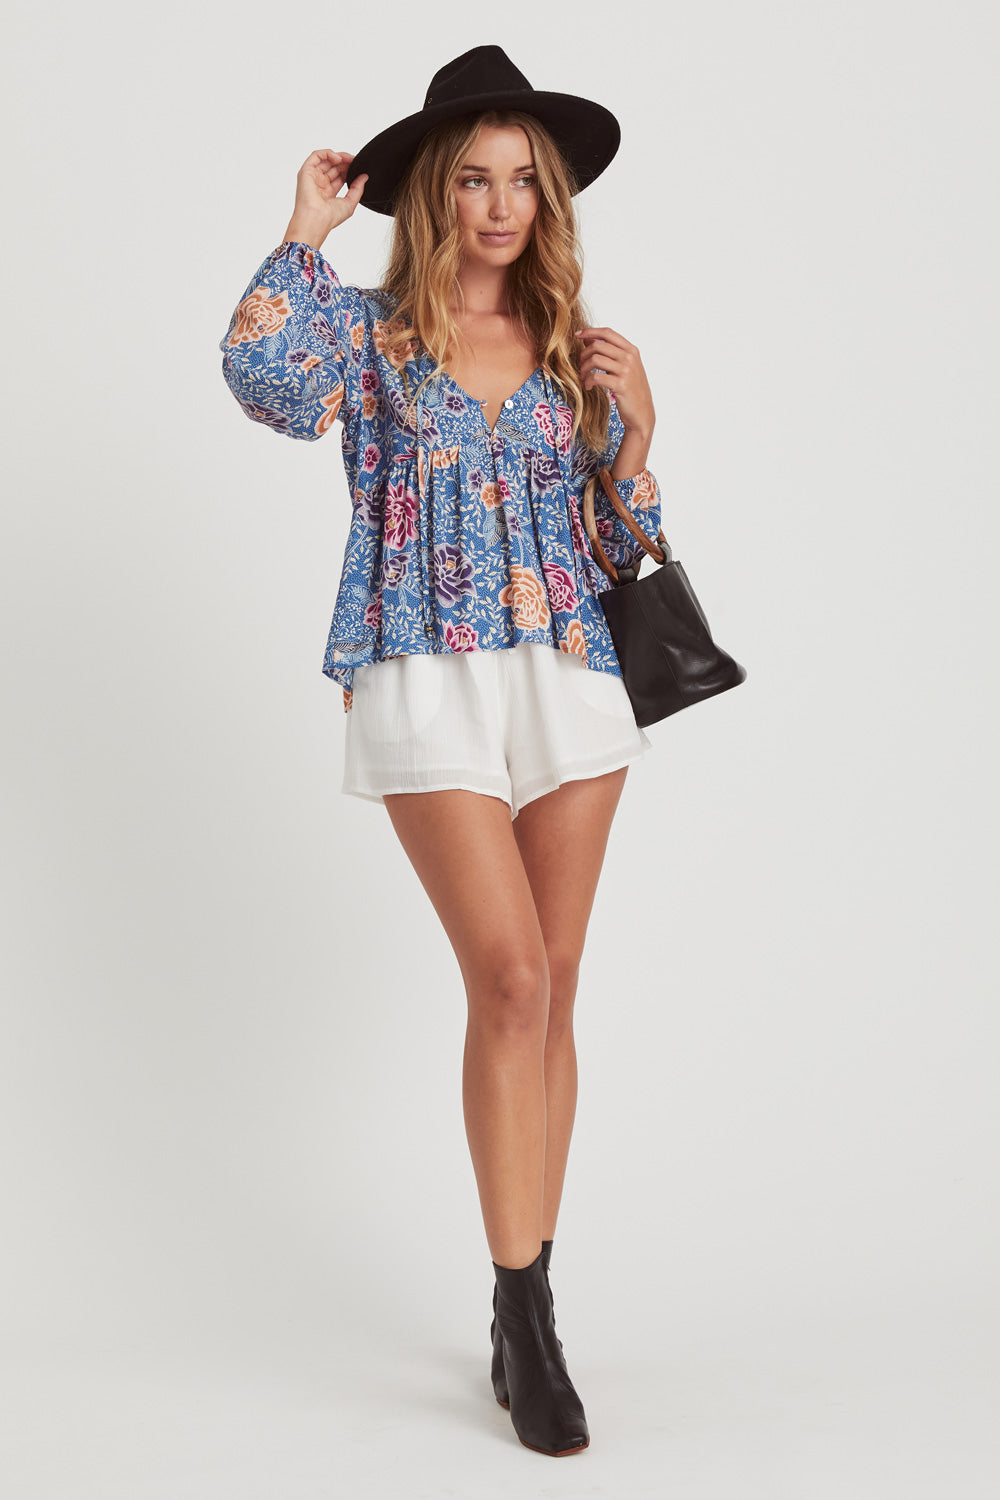 Leilani Blouse in Floral Reef